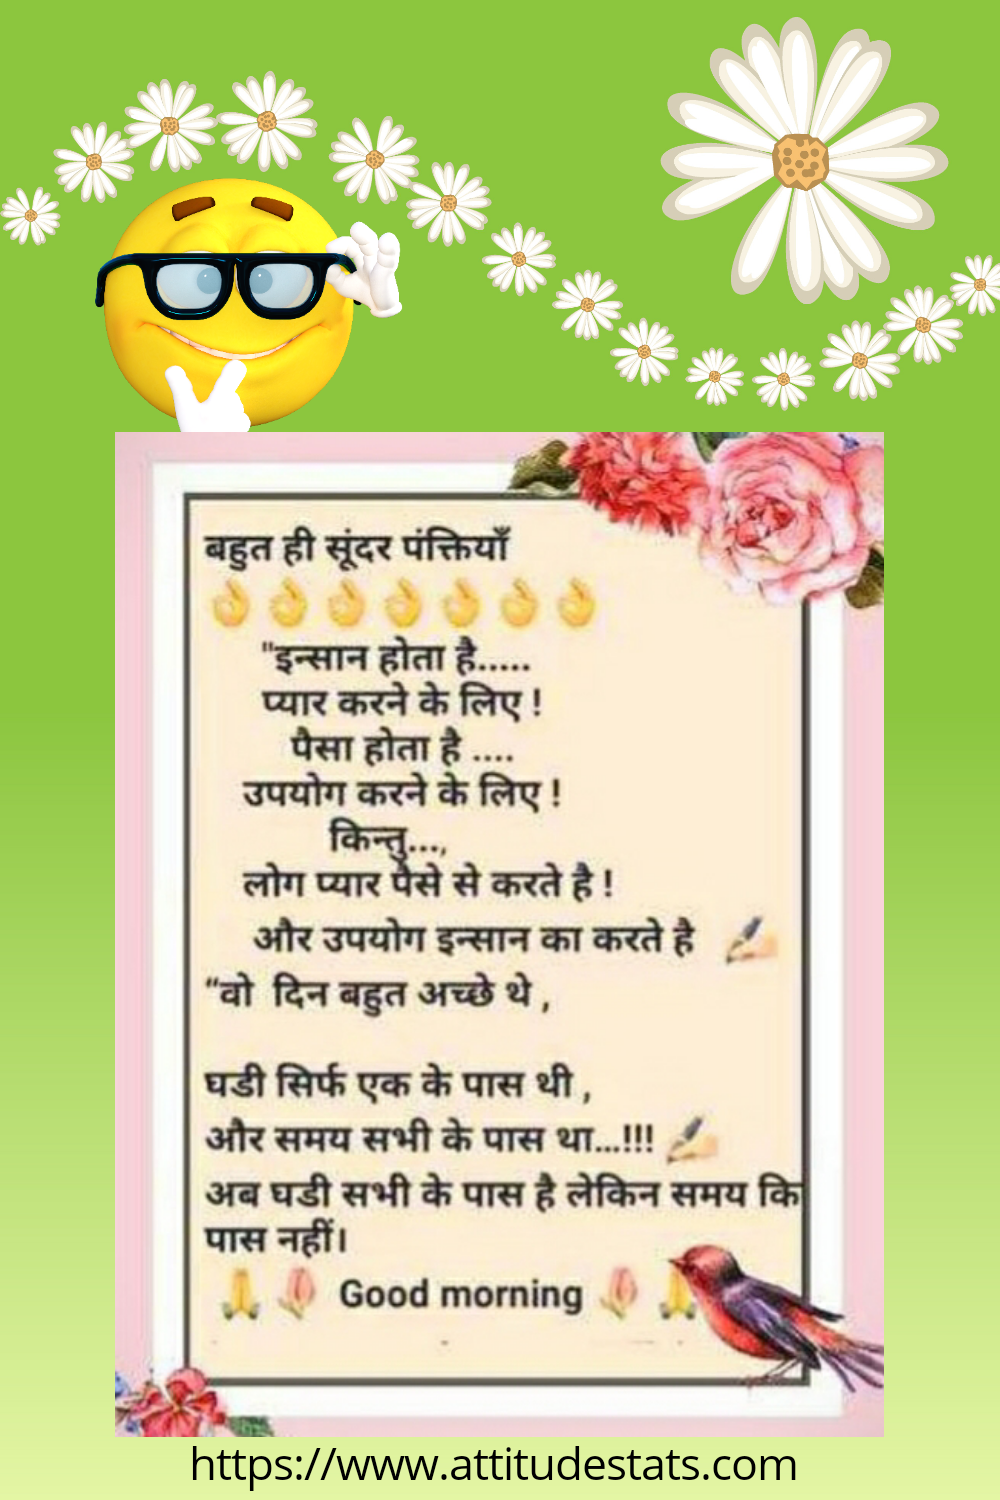 Funny Jokes Comedy Husband Wife Quotes And Riddles Hilarious Funny For Friends Latest In Hindi In 2020 Funny Jokes In Hindi Funny Joke Quote Jokes